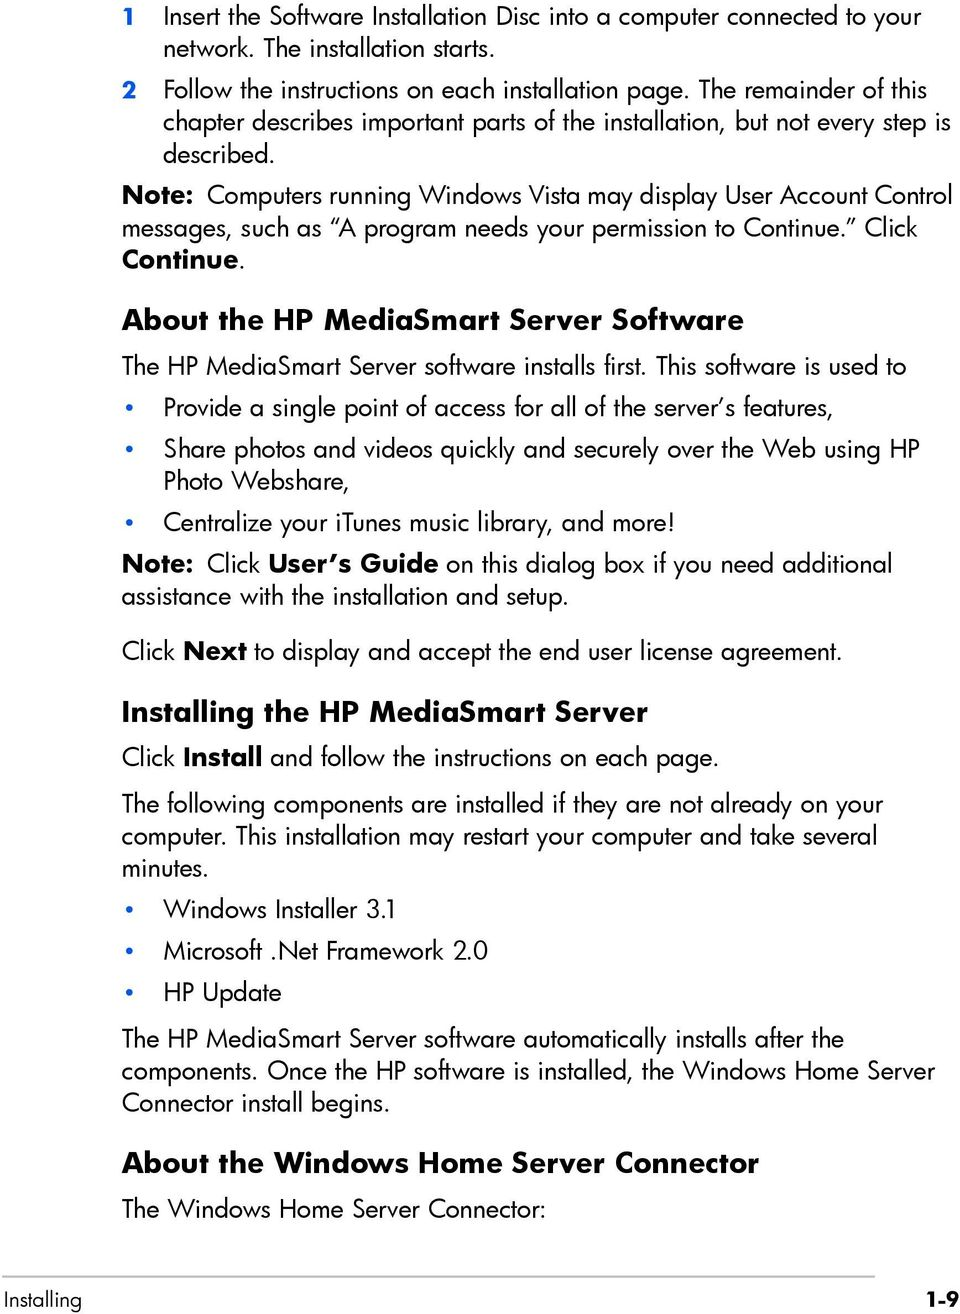 Note: Computers running Windows Vista may display User Account Control messages, such as A program needs your permission to Continue. Click Continue.